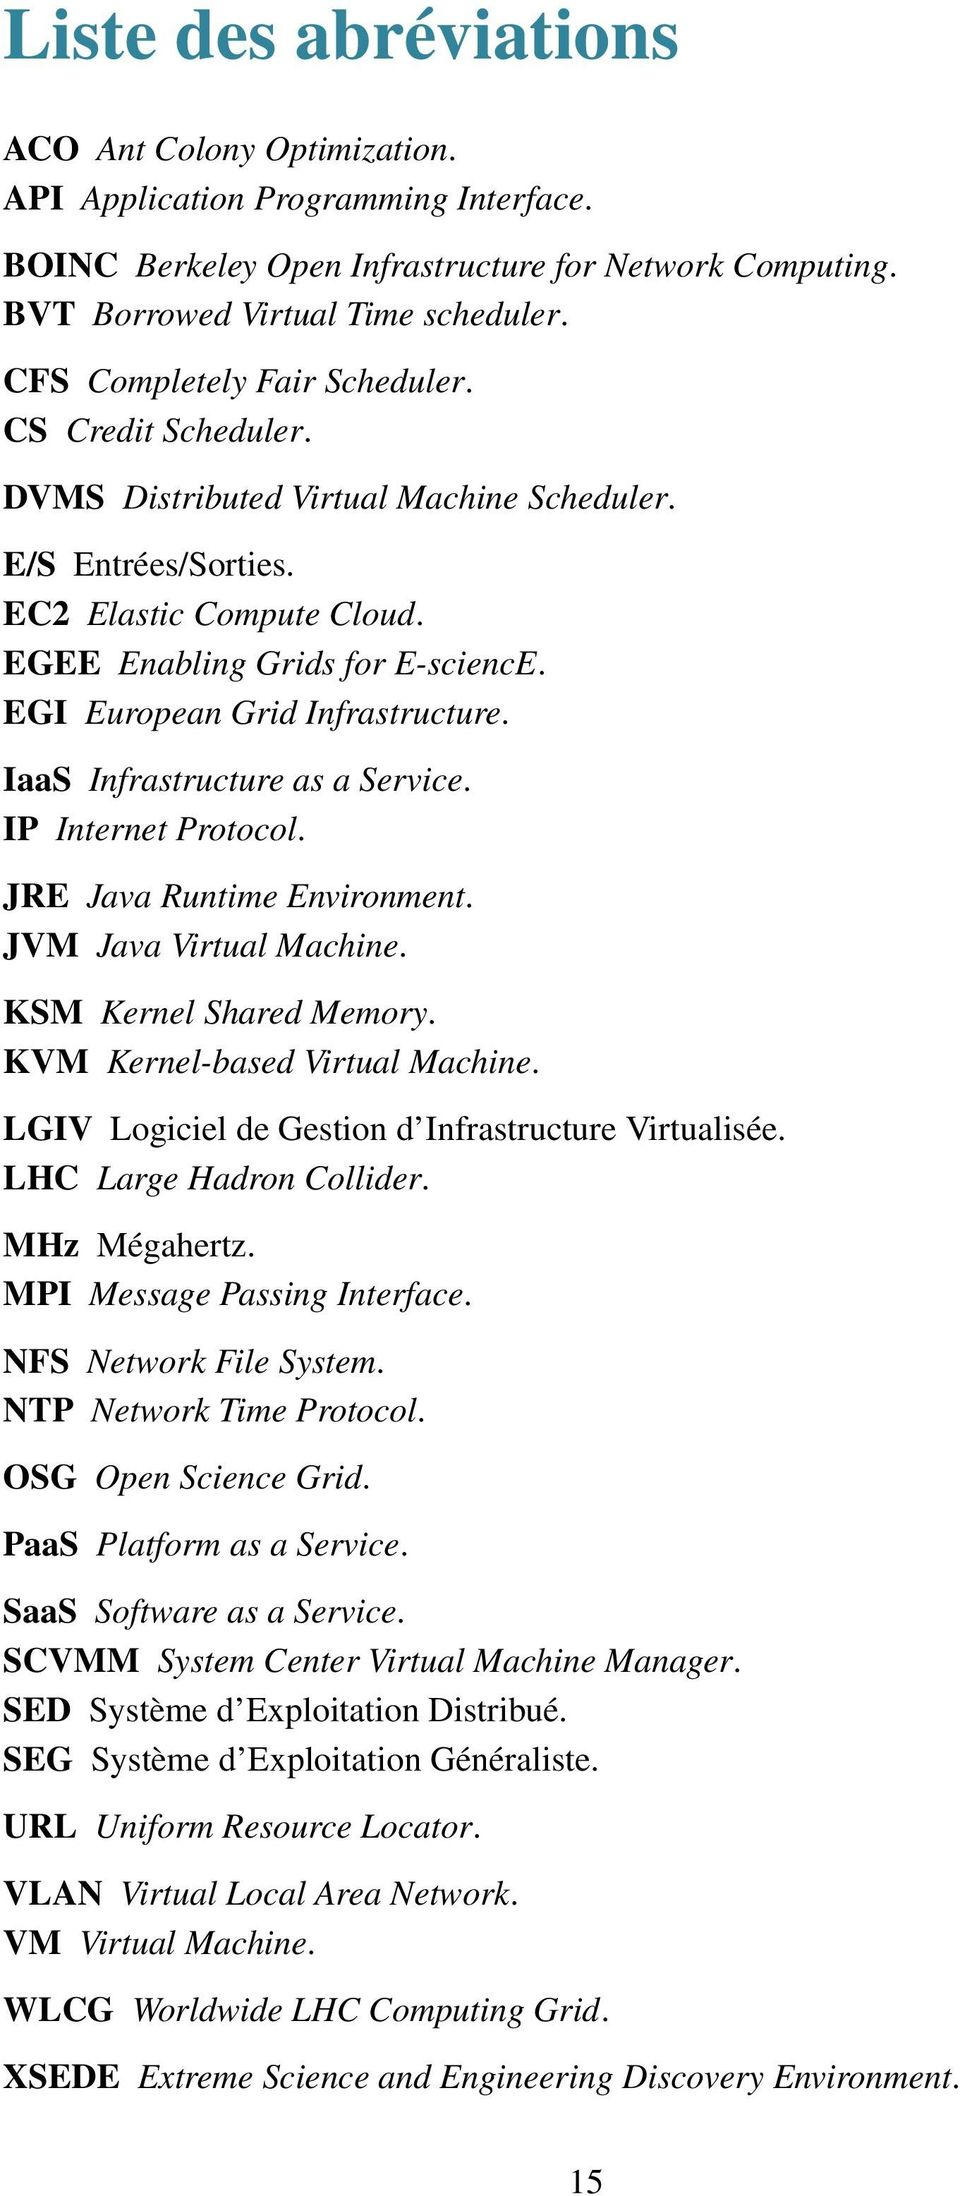 EGI European Grid Infrastructure. IaaS Infrastructure as a Service. IP Internet Protocol. JRE Java Runtime Environment. JVM Java Virtual Machine. KSM Kernel Shared Memory.